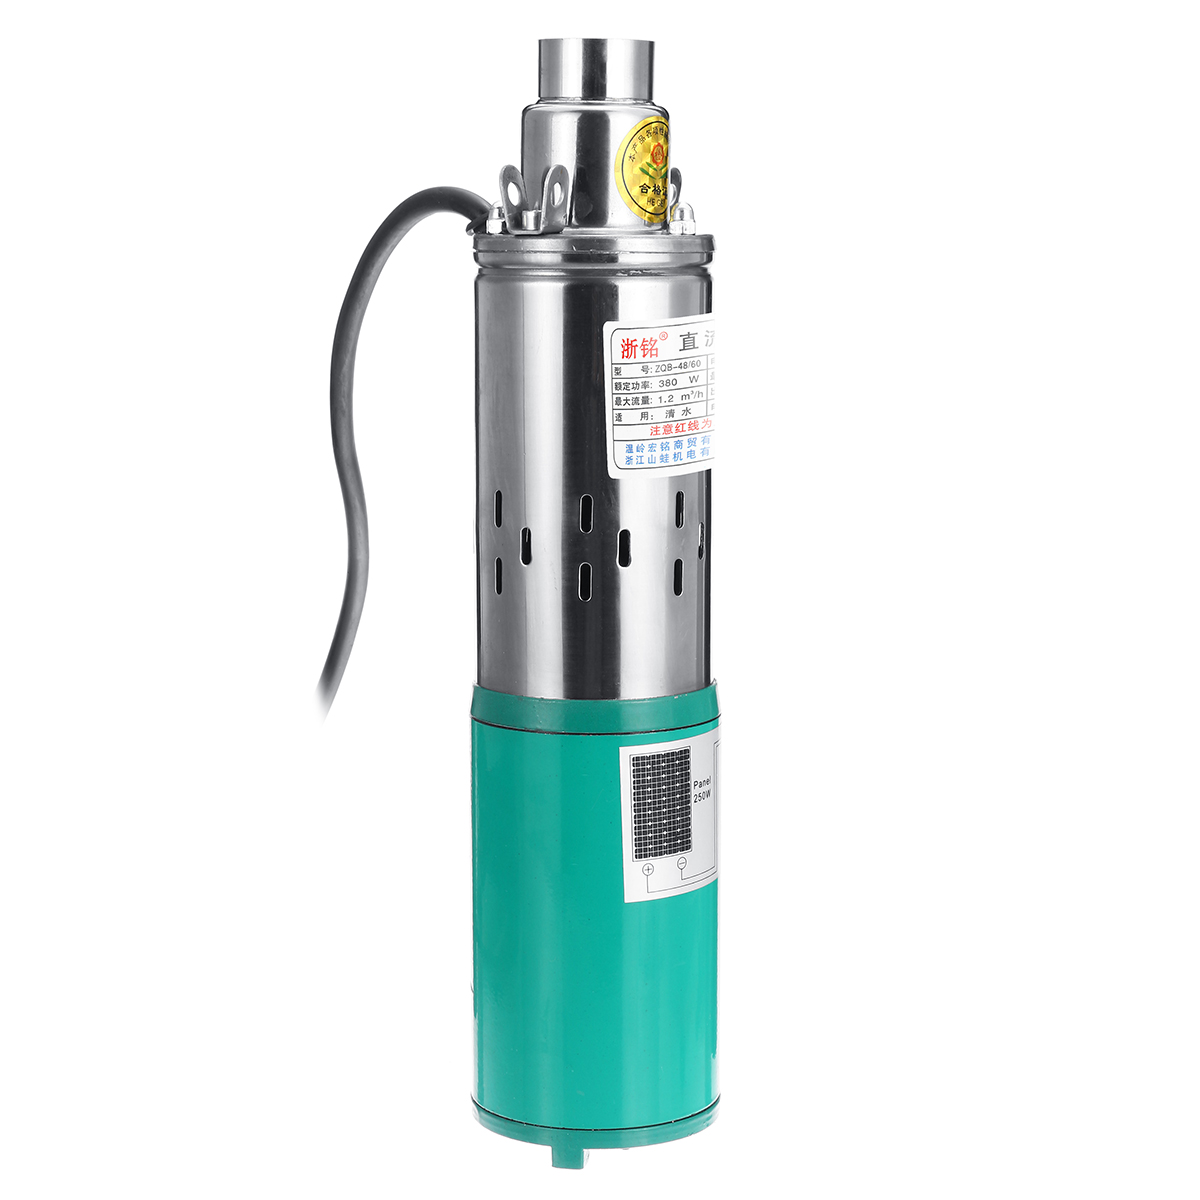 380W 48V/60V Deep Well Pump 1.2m/h Stainless Steel Submersible Pump Deep for Industrial Home Use